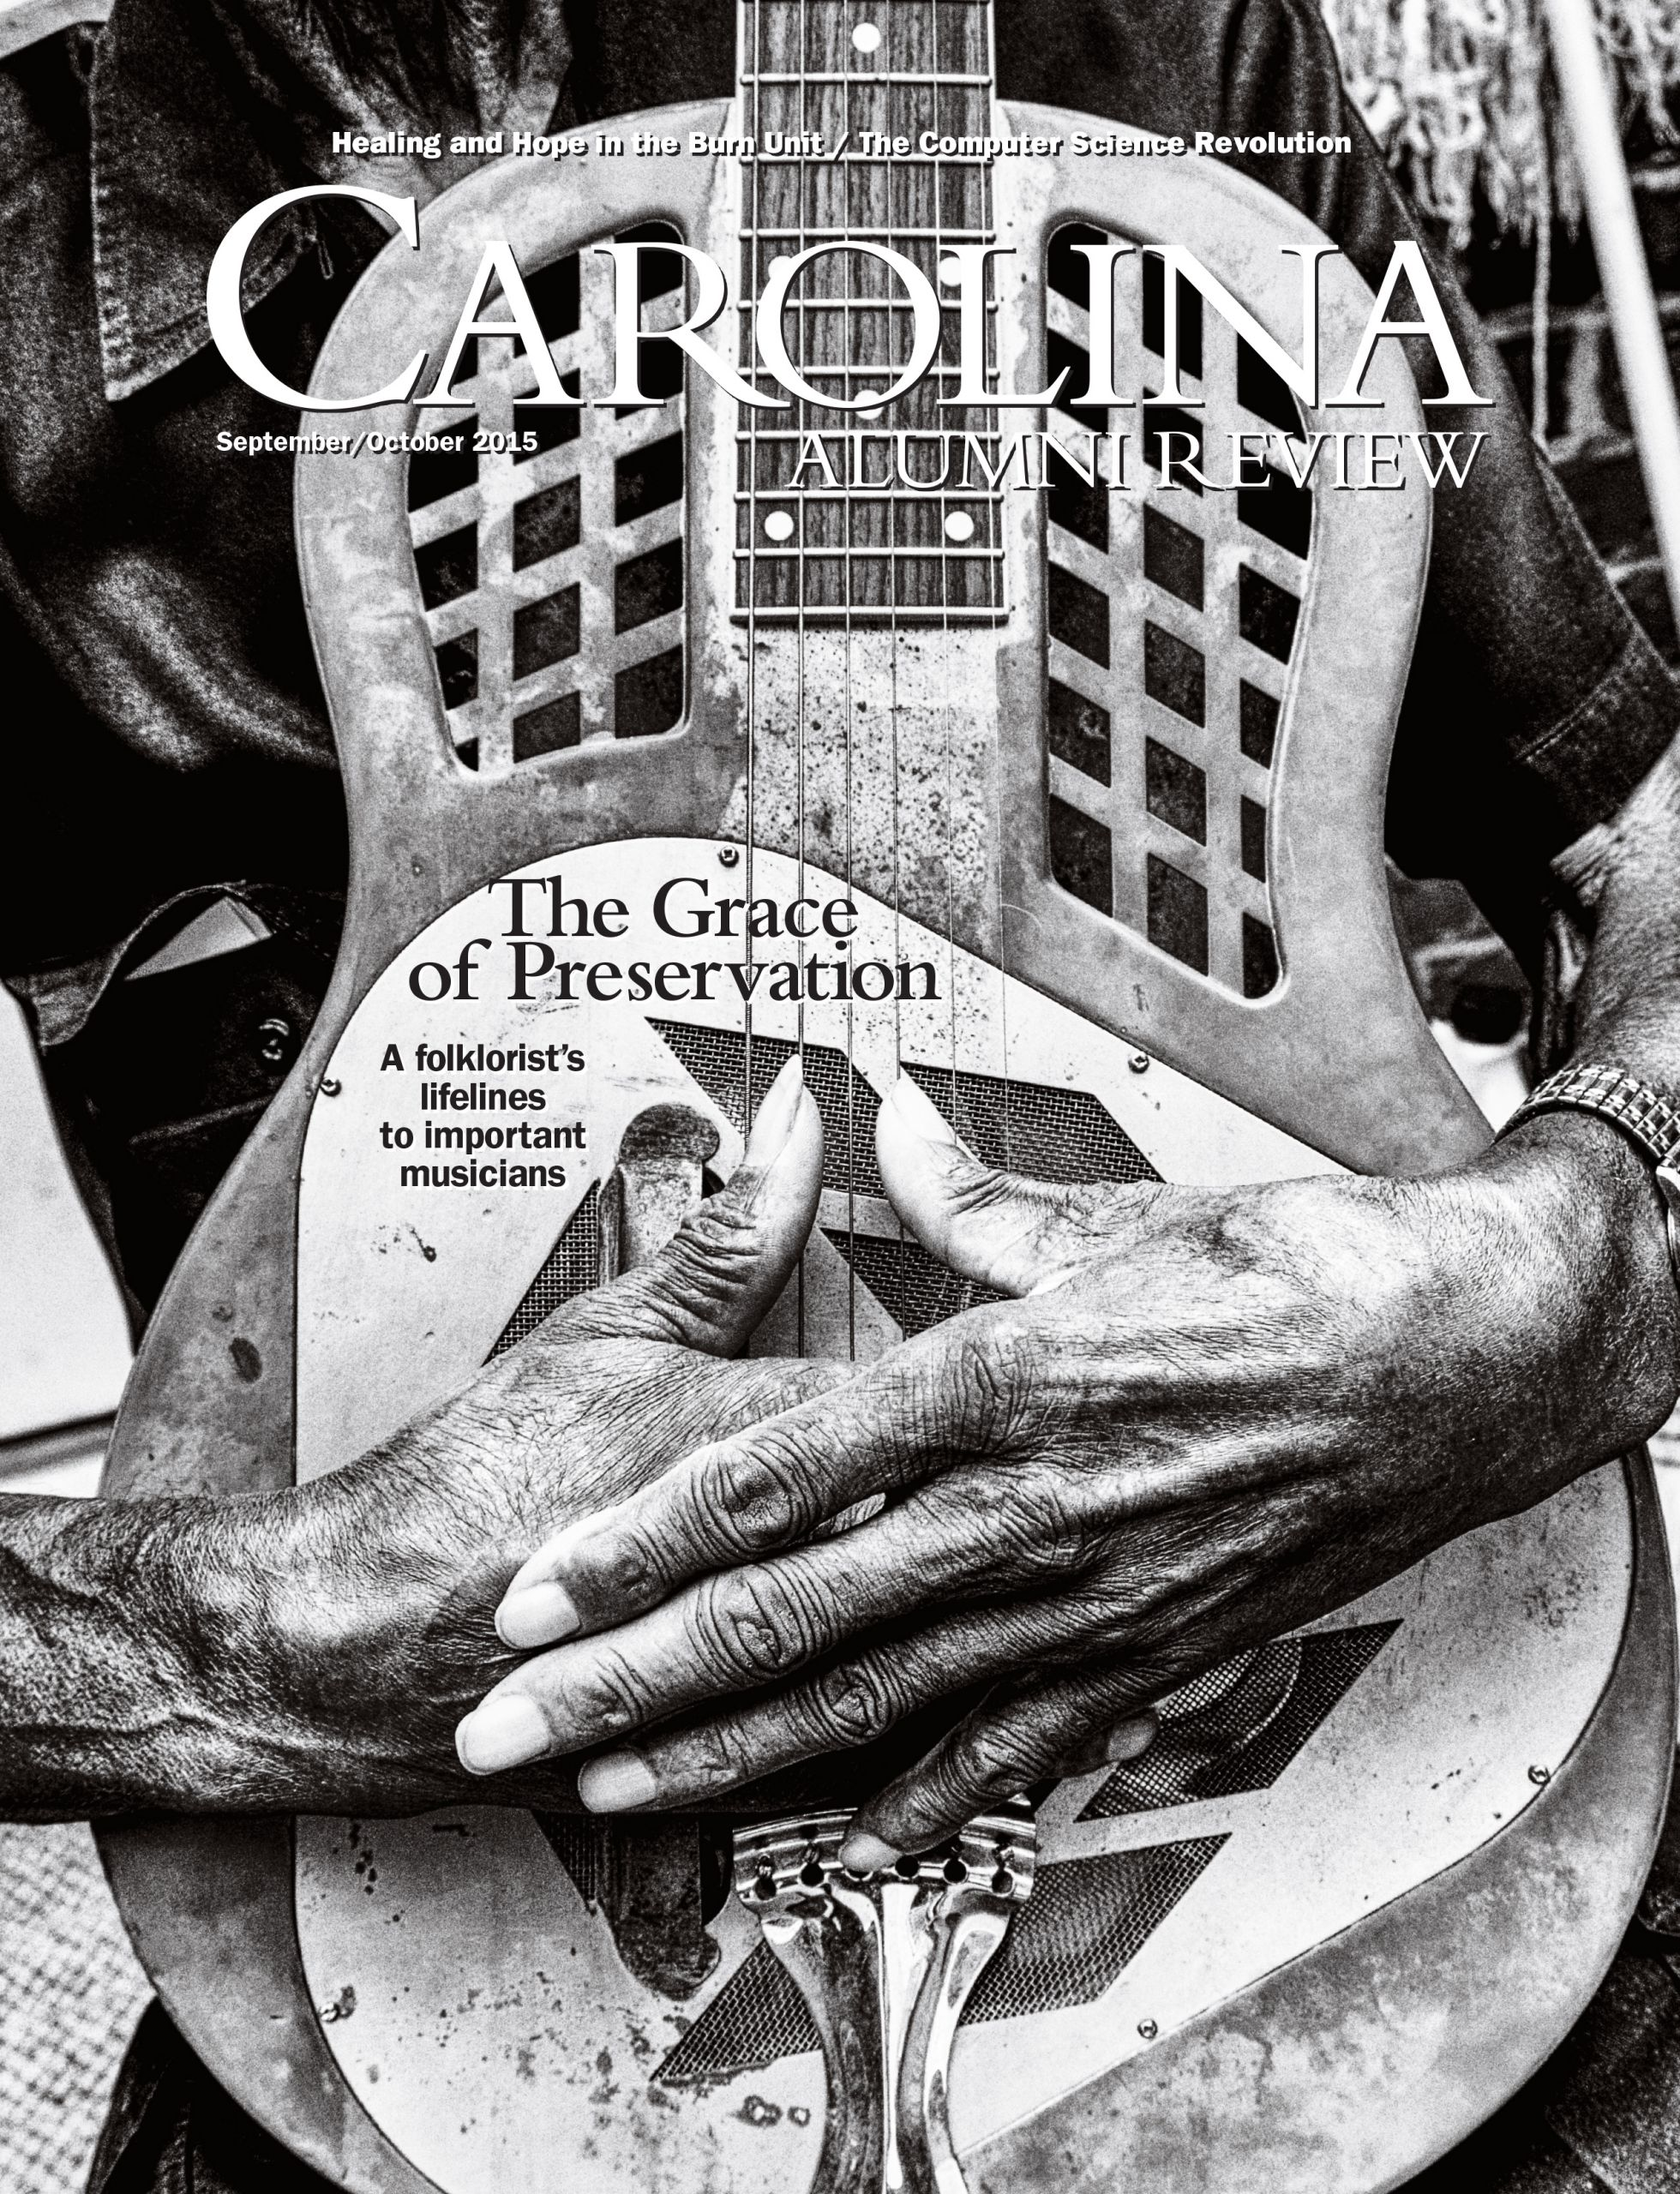 Carolina Alumni Review September/October 2015 cover